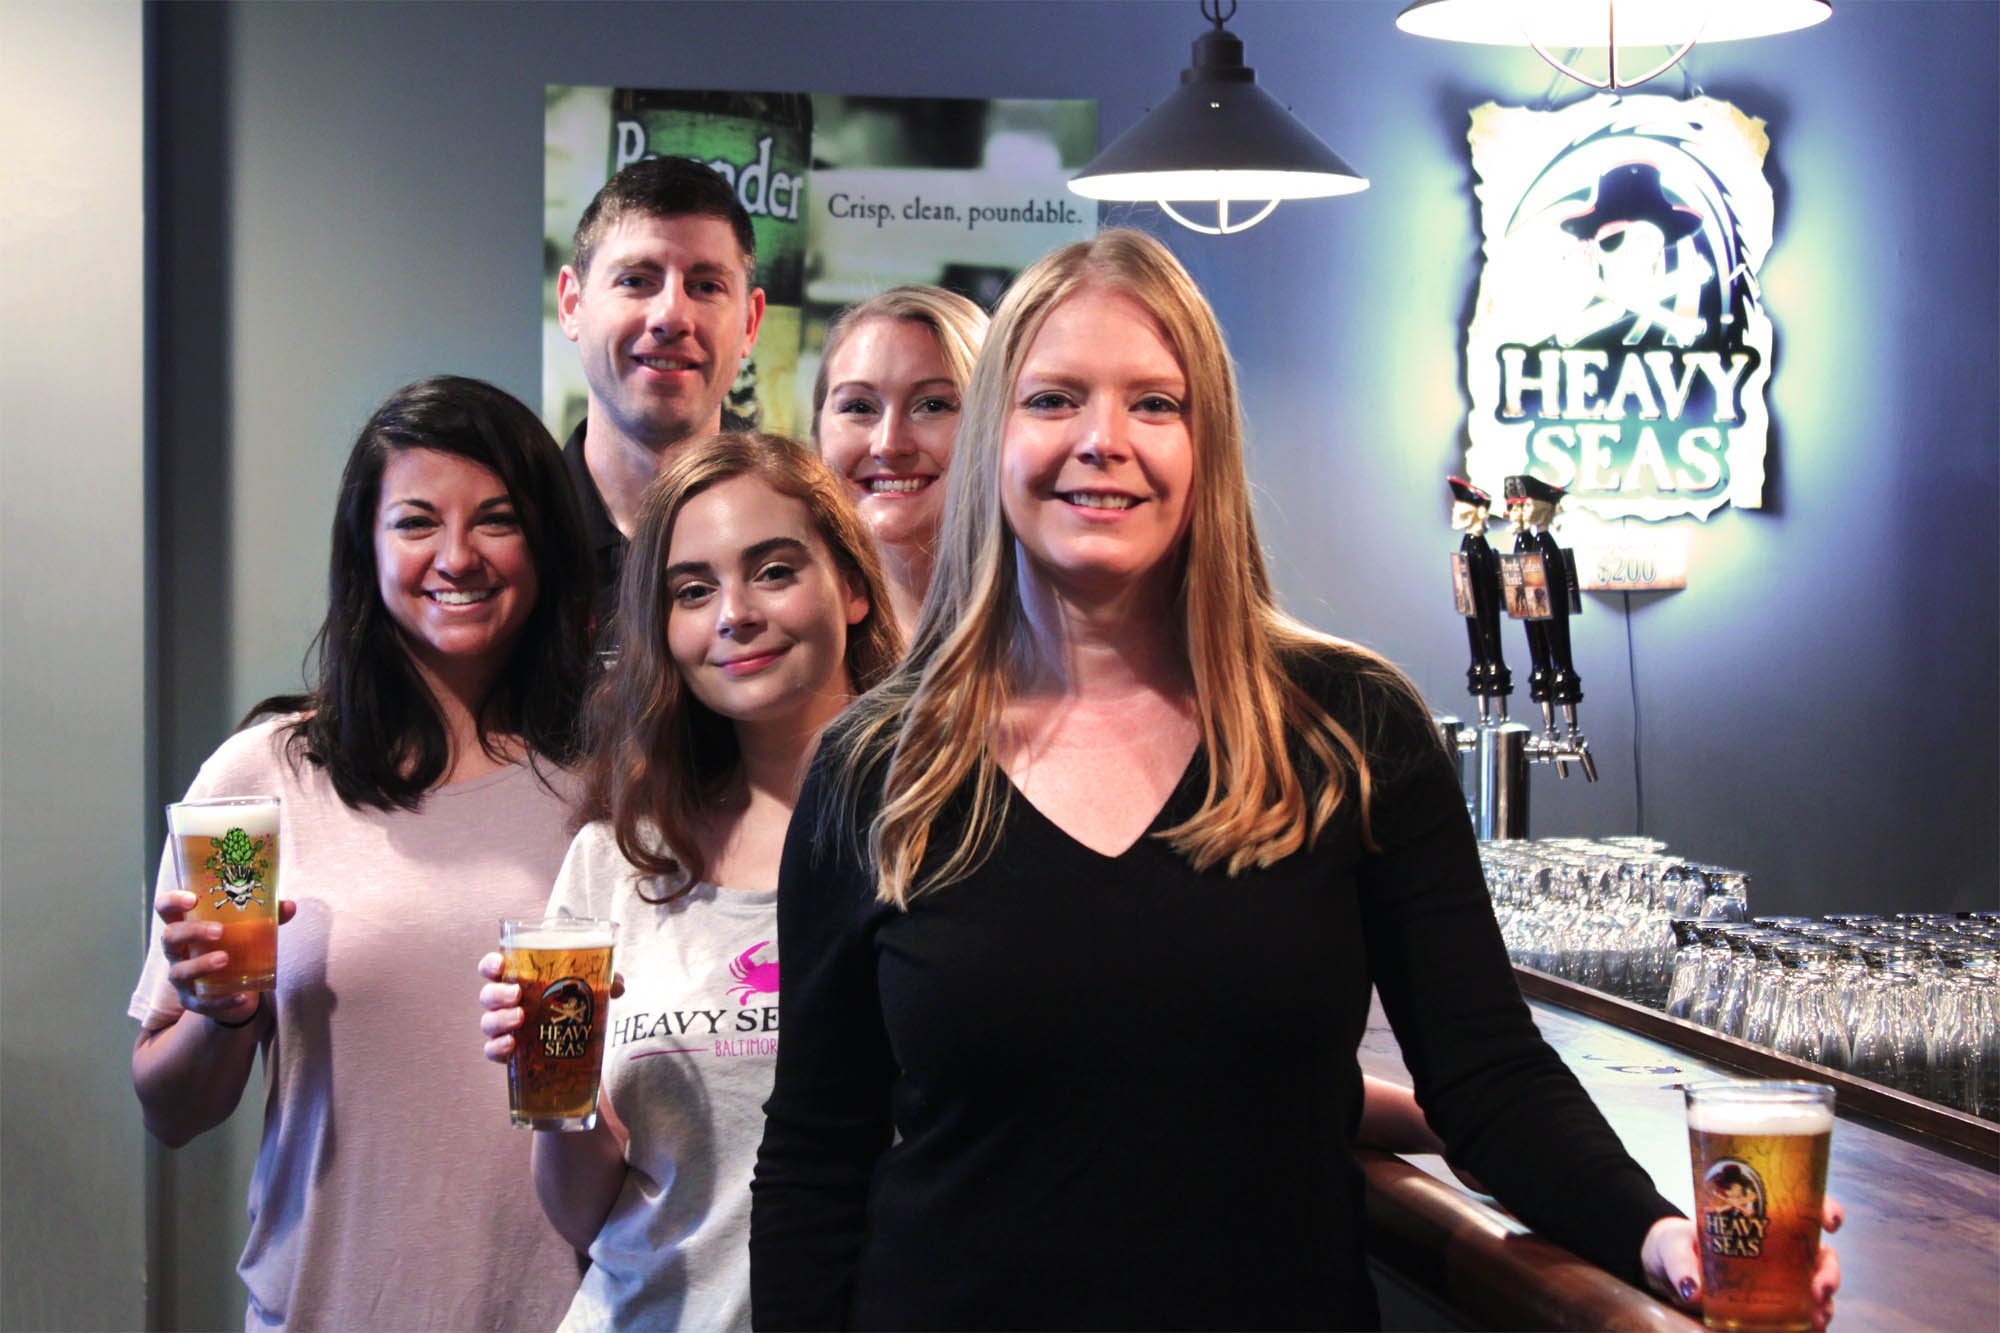 Pictured (left to right, back to front): Tristan Gilbert, Brand Manager;Christine Shaffer, Communications Specialist; Caroline Sisson, Events Coordinator; Amanda Zivkovic, Events Coordinator; Sarah West, Director of Marketing & Hospitality